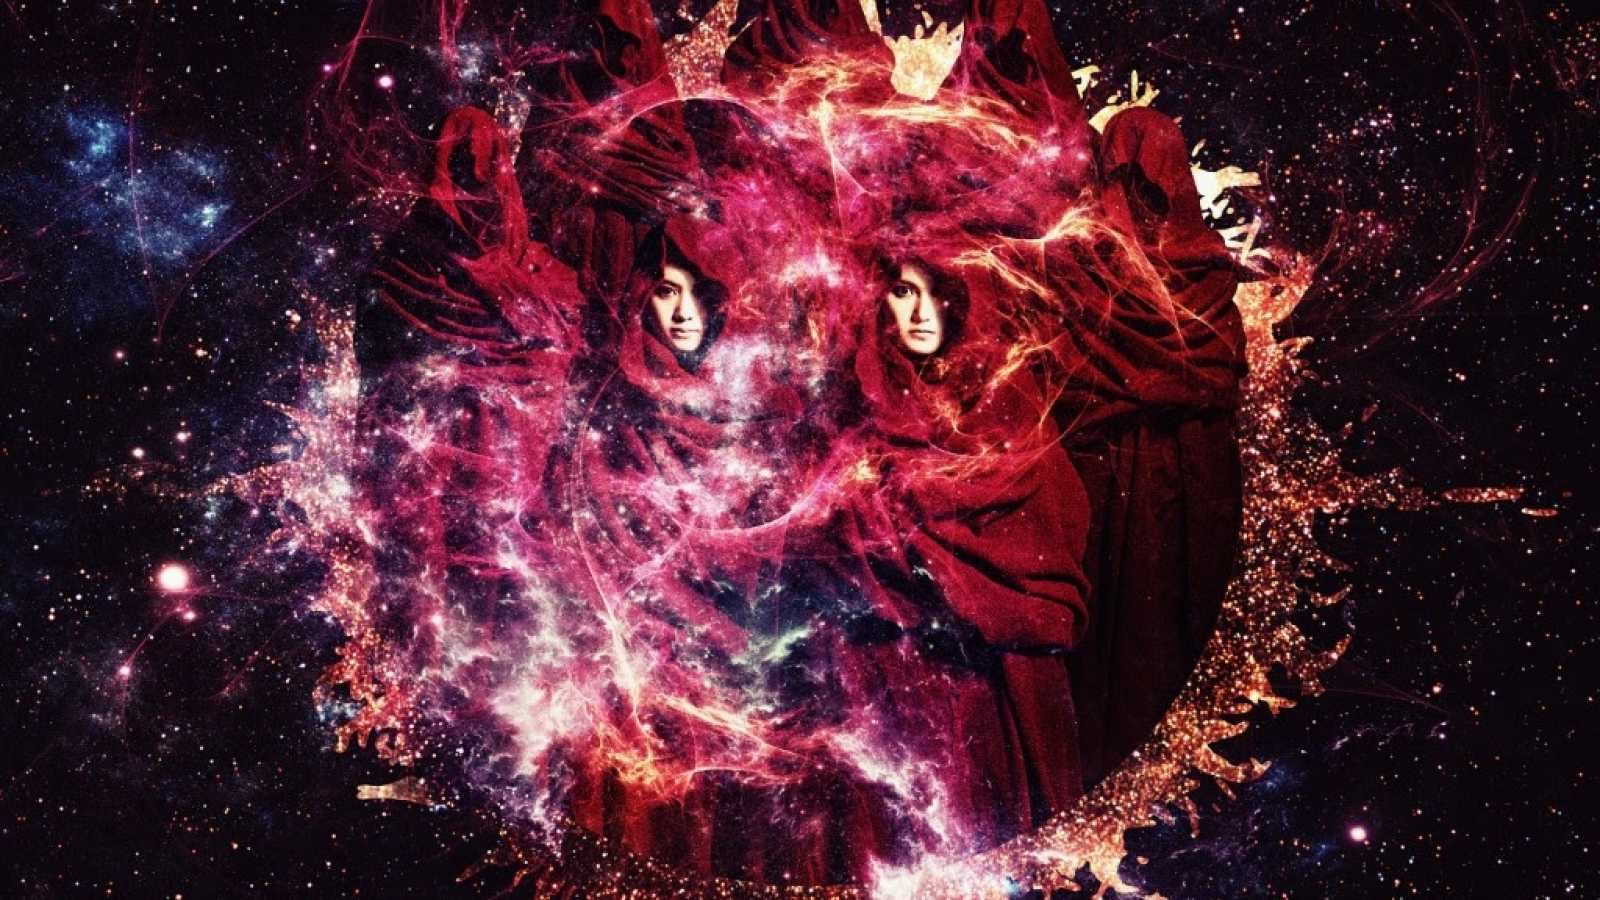 BABYMETAL - METAL GALAXY © BABYMETAL. All rights reserved.